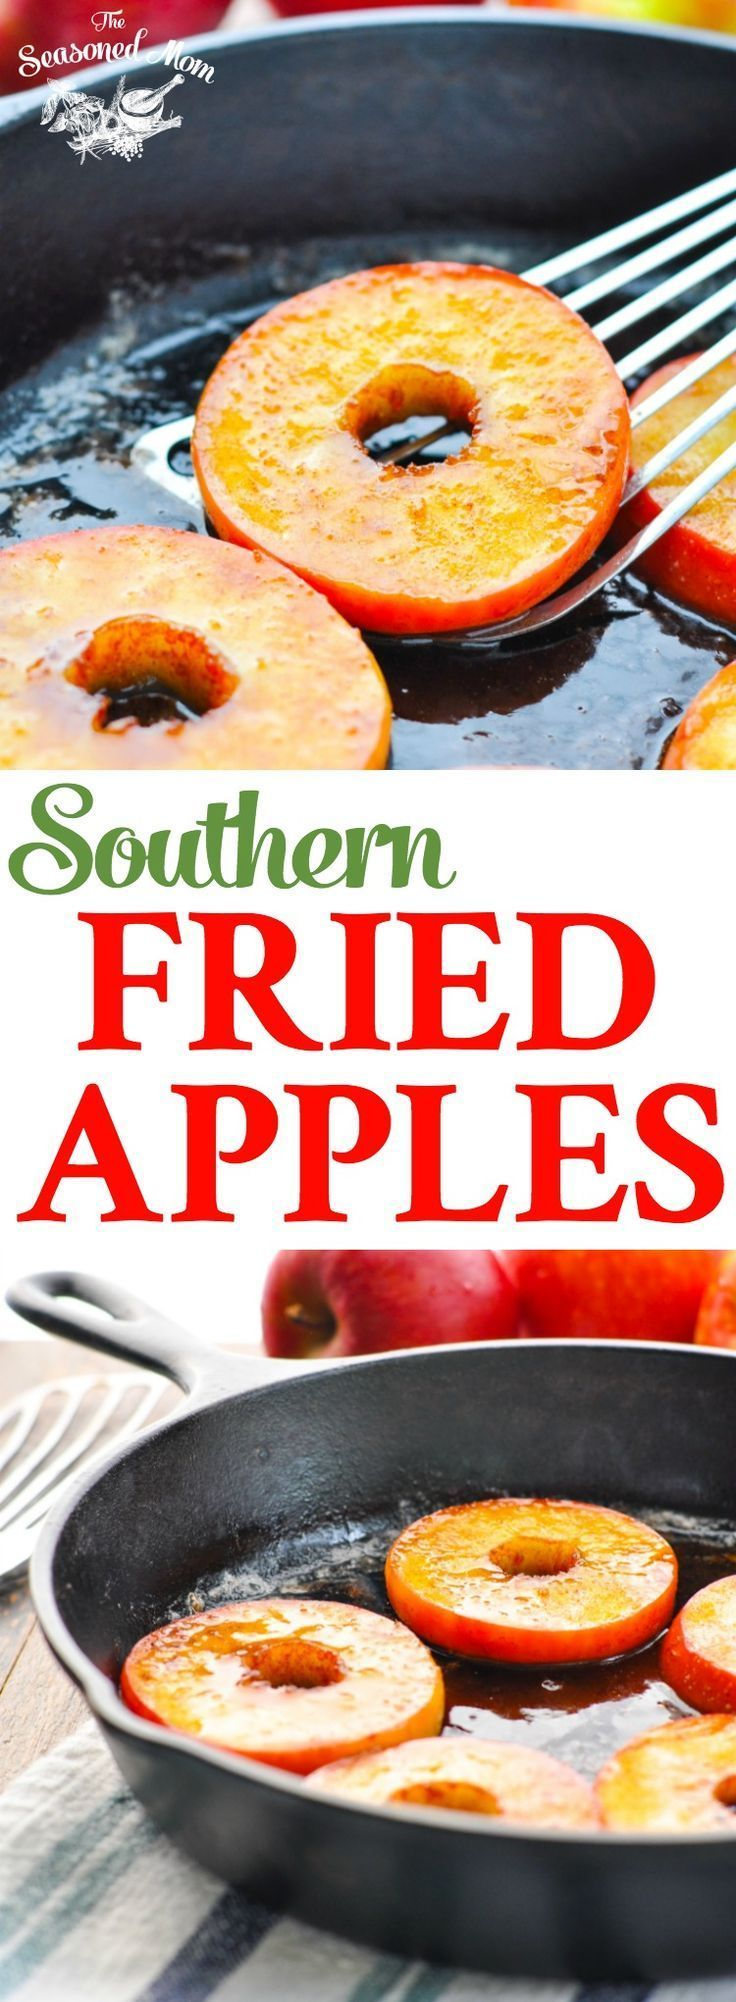 These Southern Fried Apples are an easy side dish or light dessert for fall! Sides | Apple Recipes | Easy Dessert Recipes | 5 Ingredients or Less Recipes